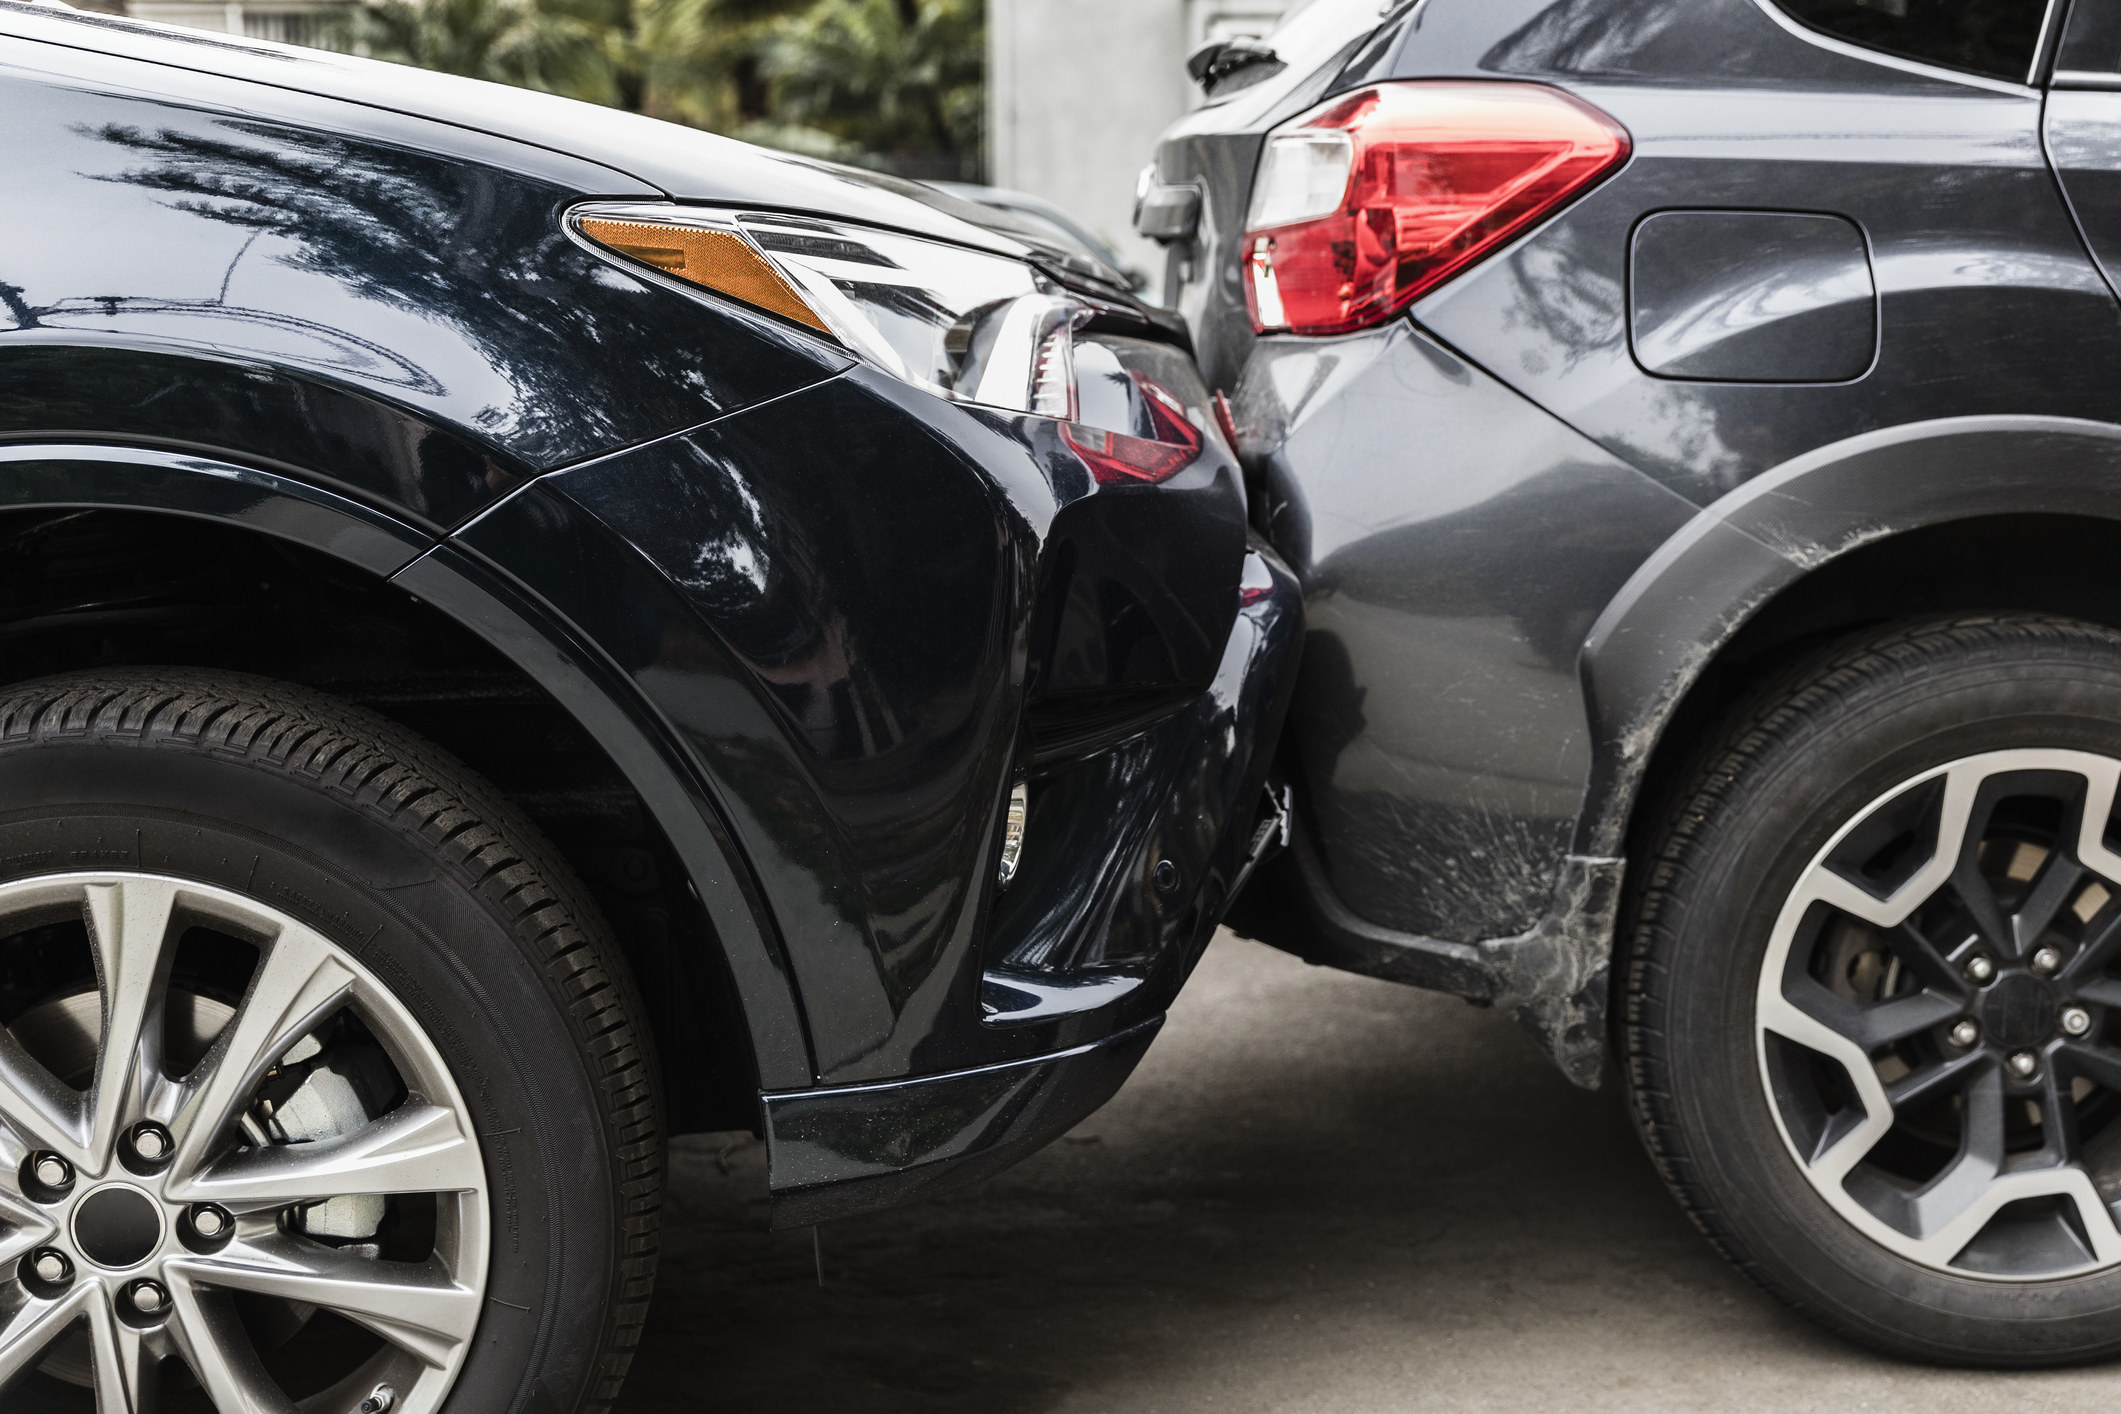 A car hits another car that's parked